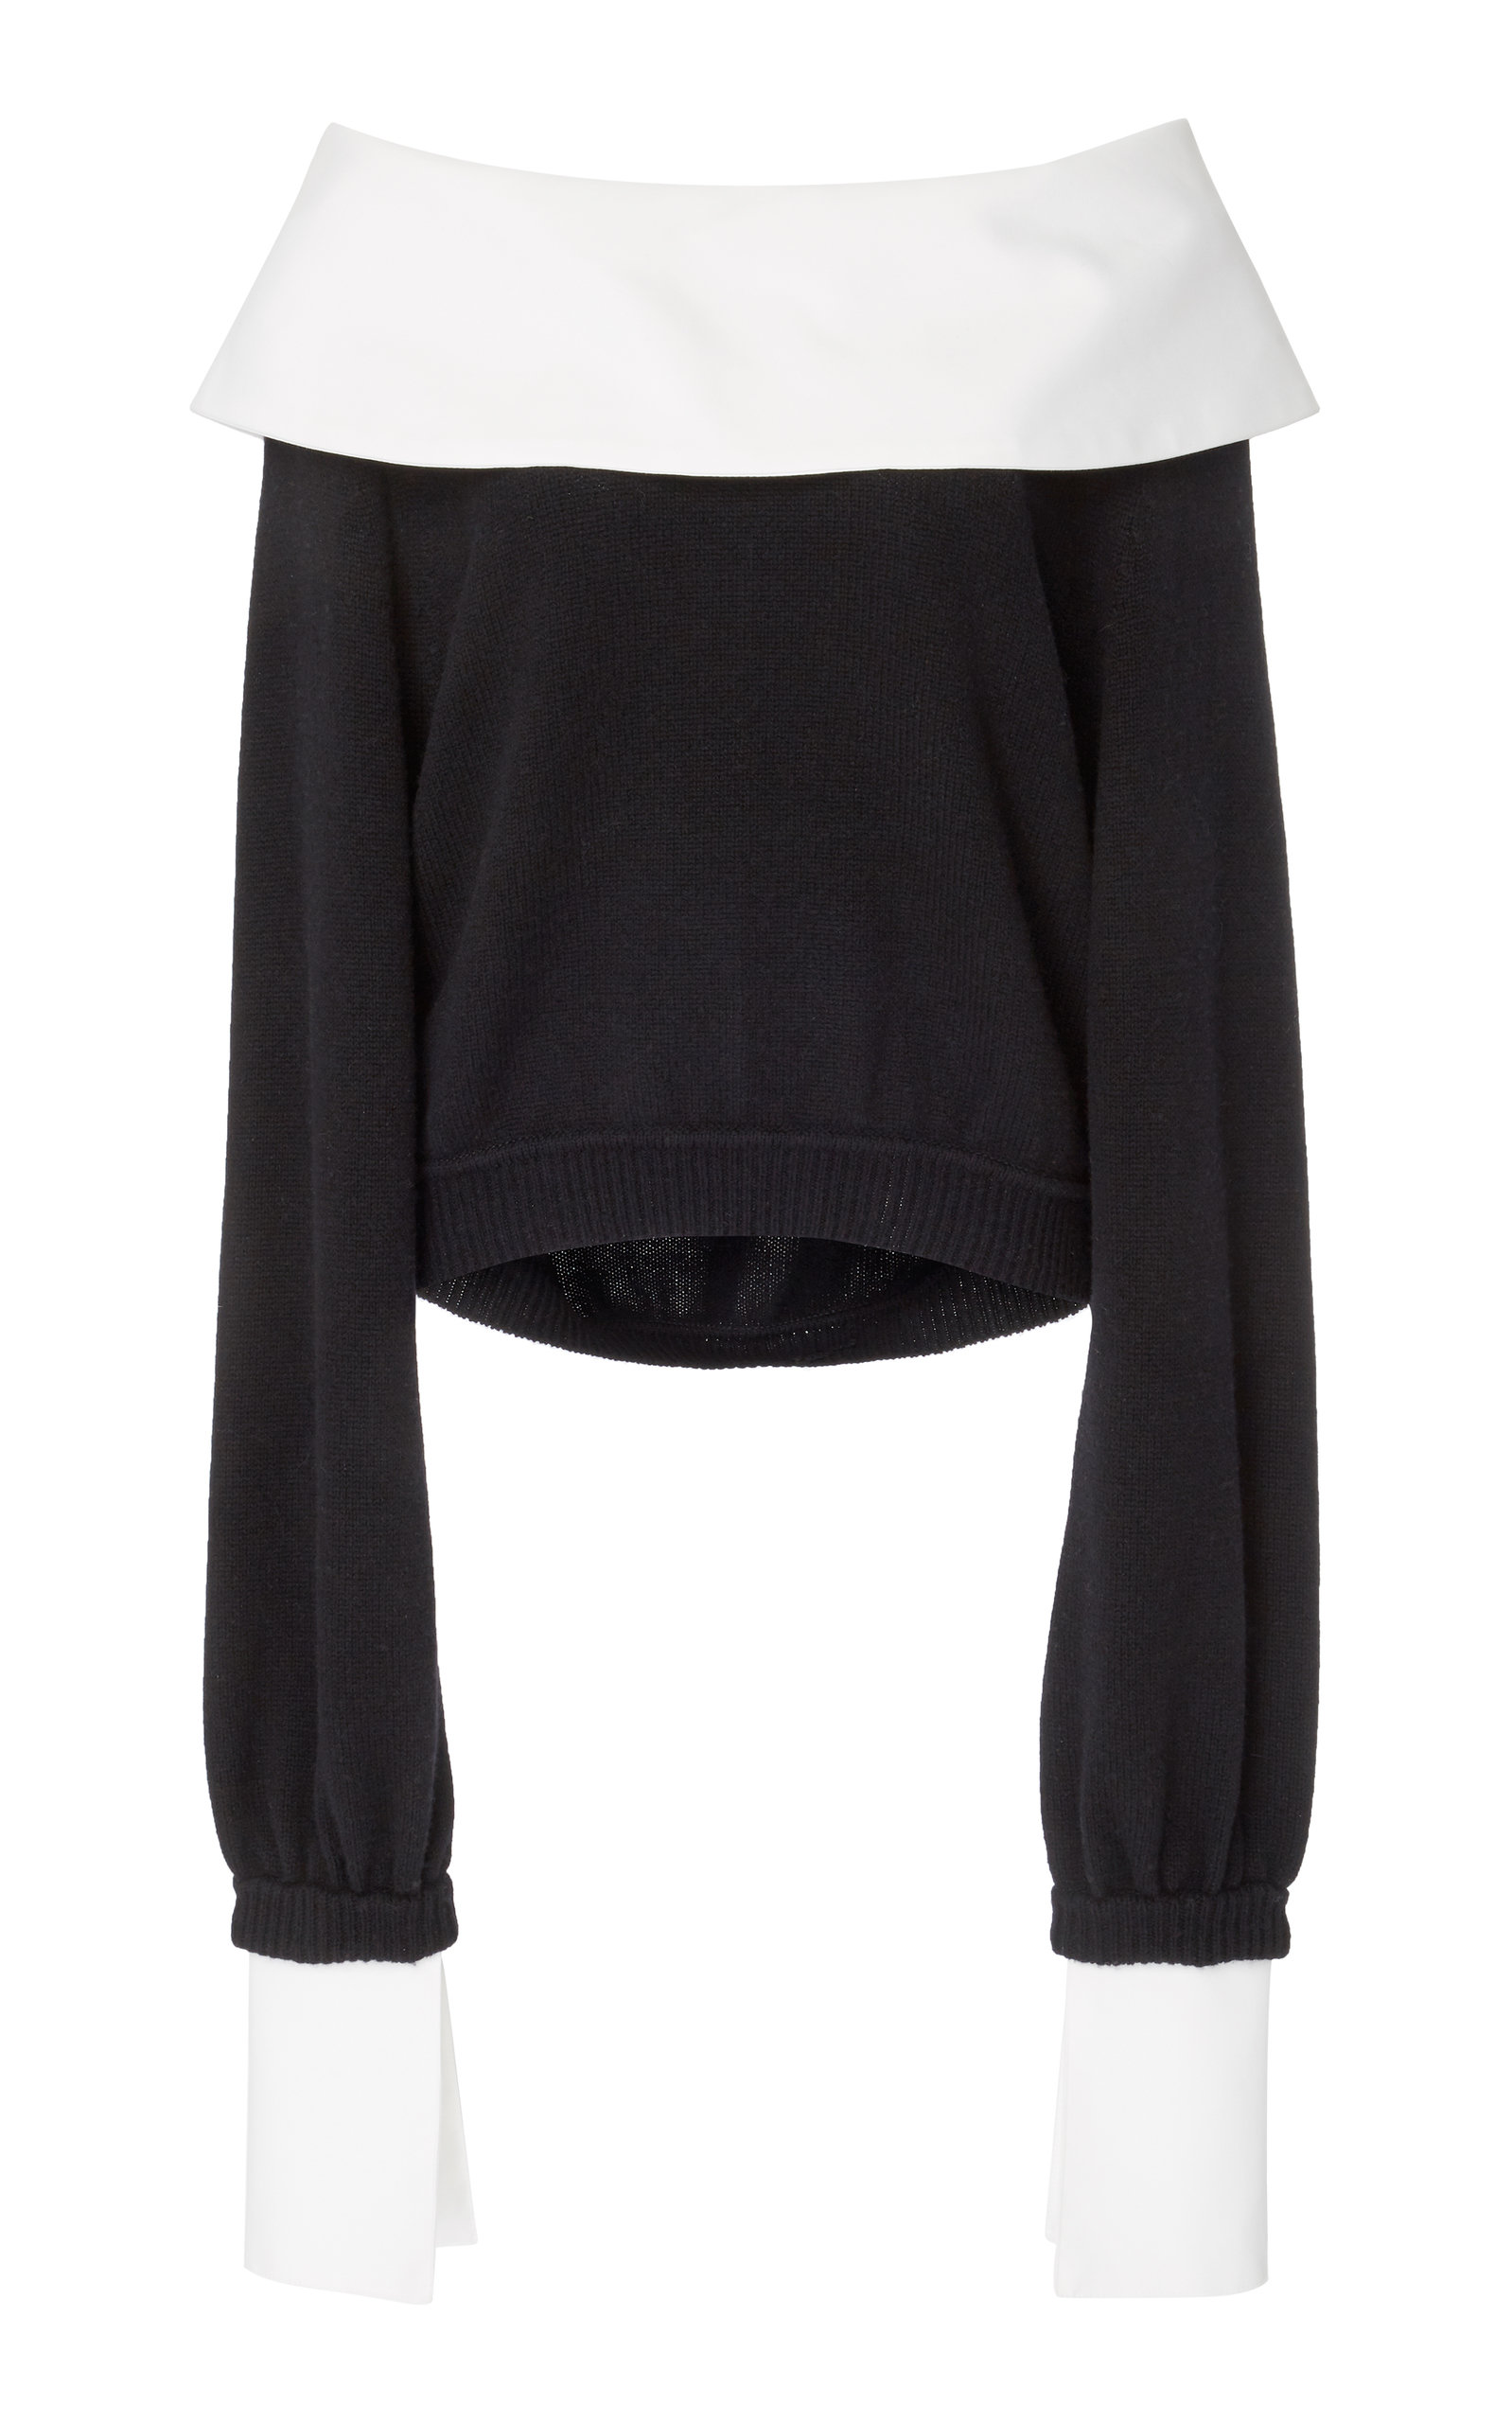 ADEAM Convertible Collared Cashmere Sweatshirt in Black